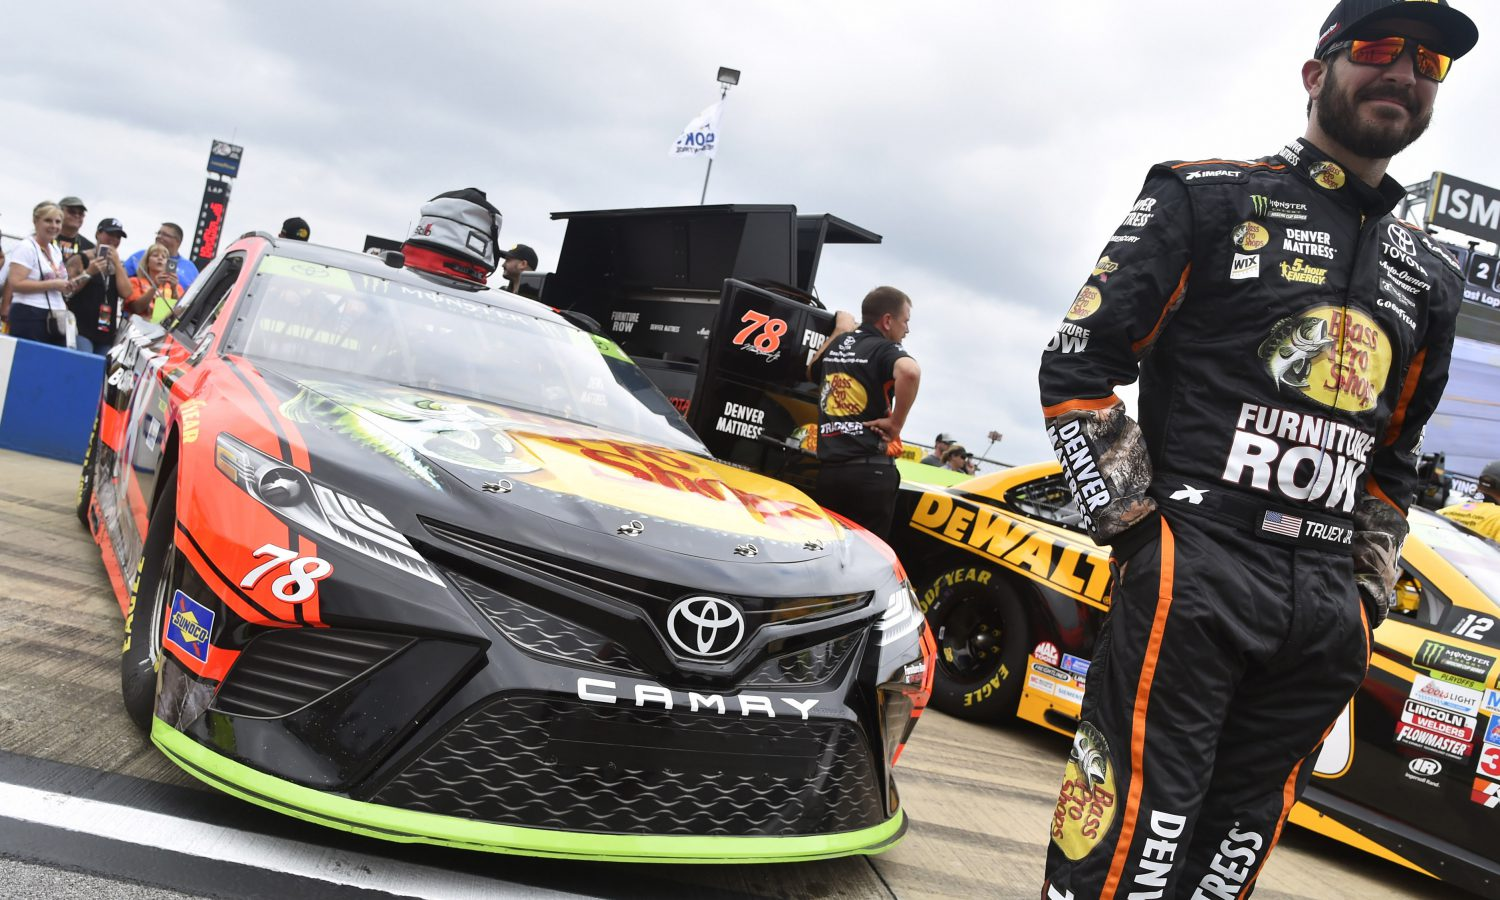 Titles to be Decided in NASCAR, USAC